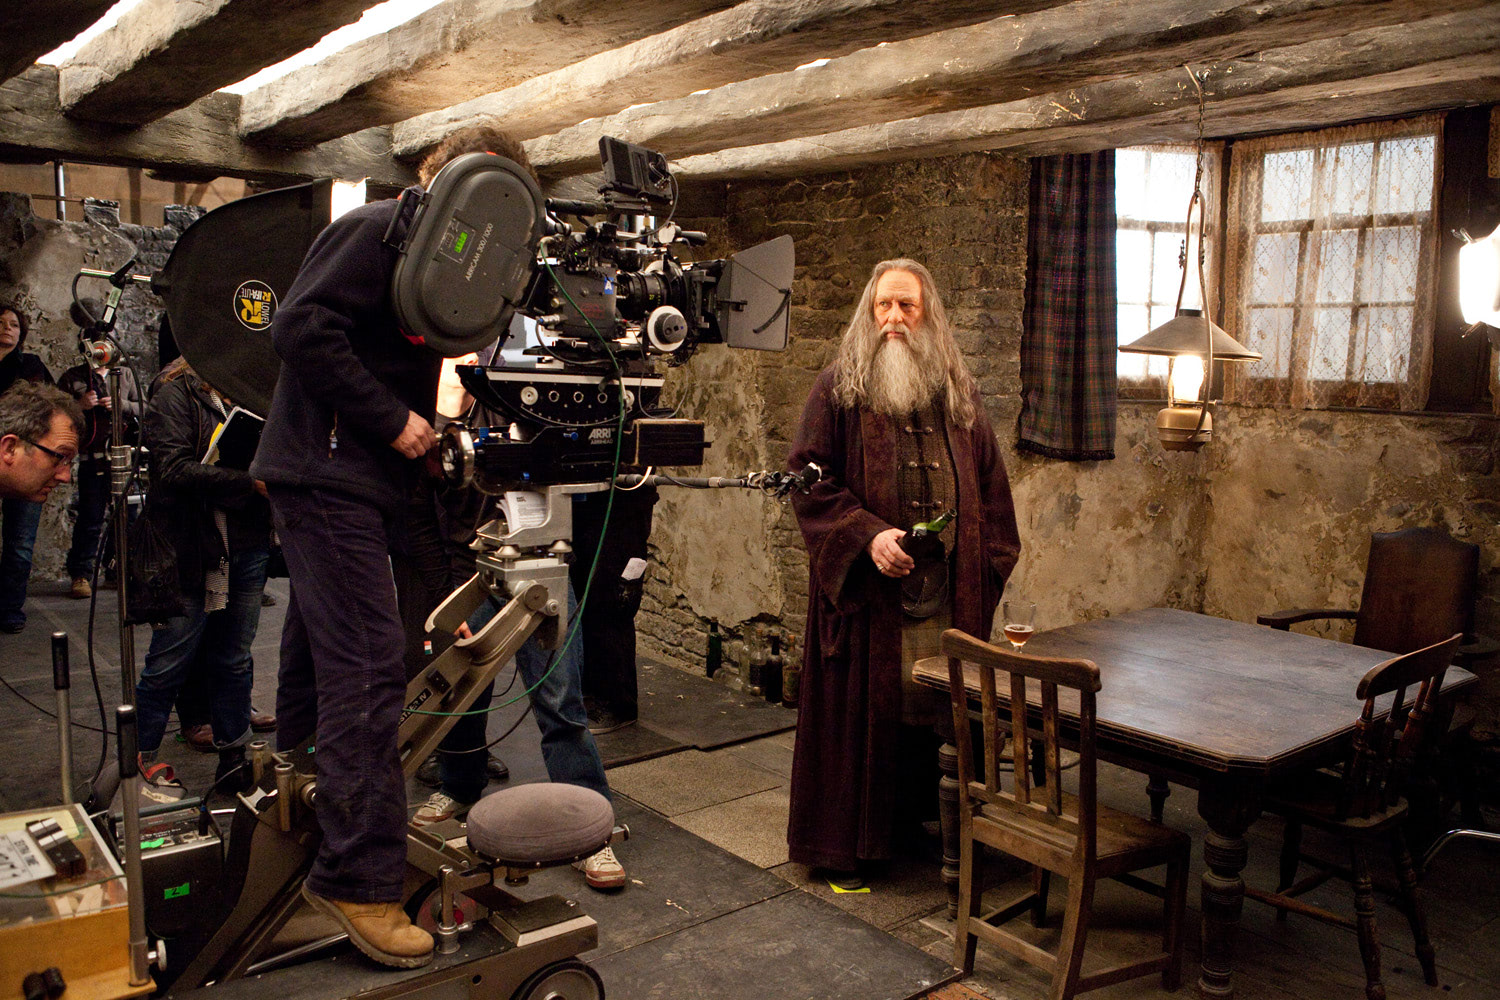 Filming in The Three Broomsticks